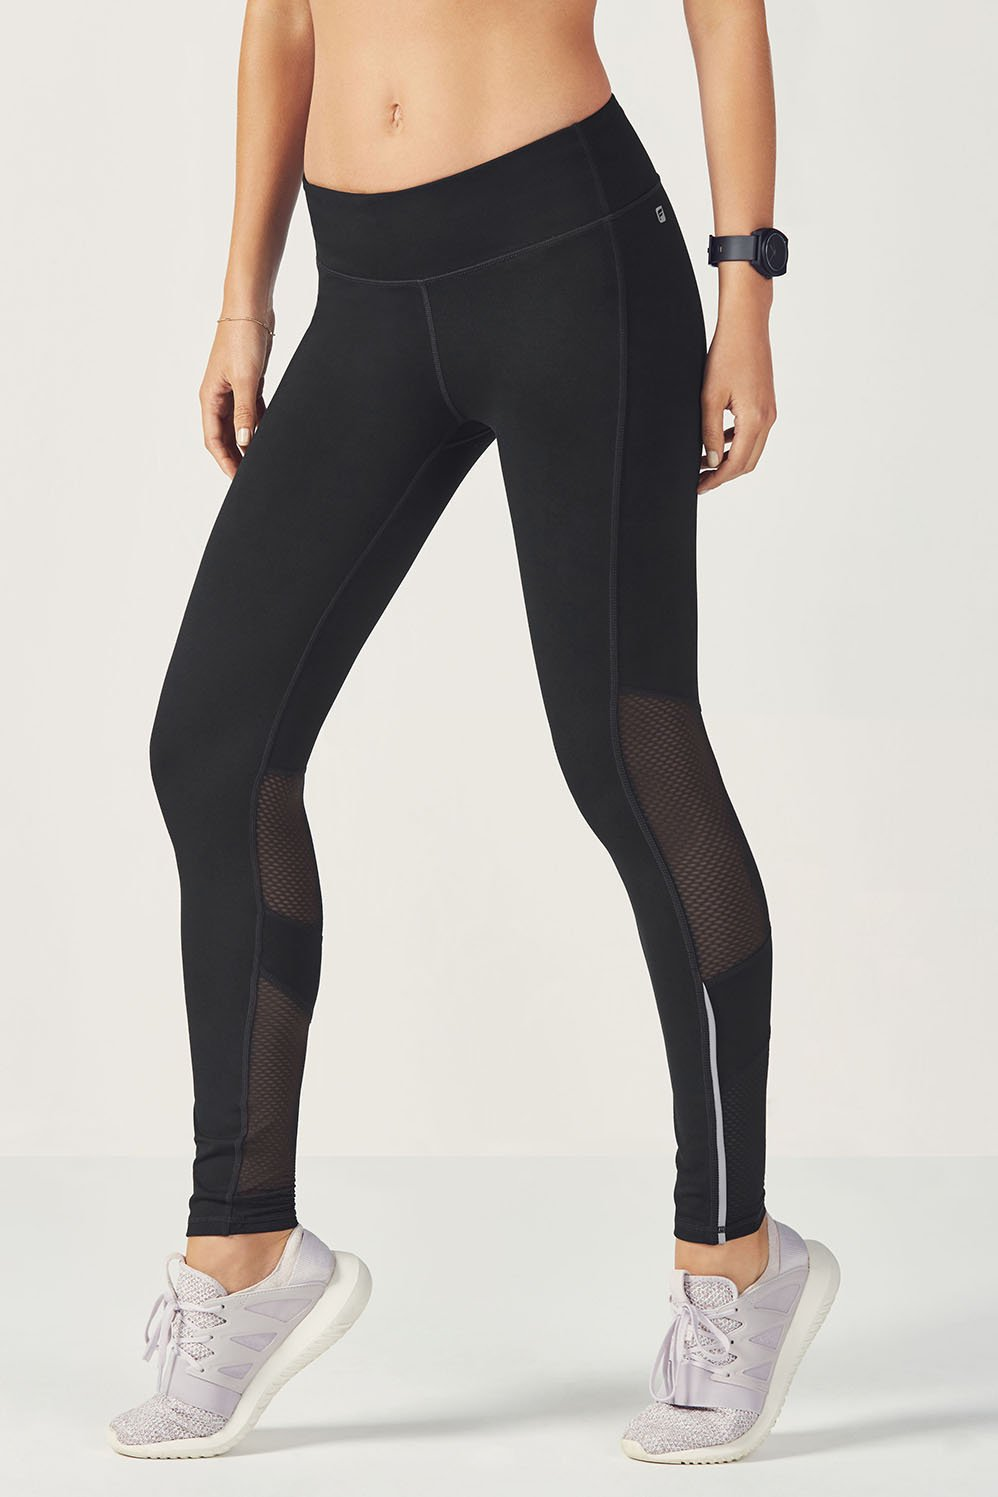 promo code fashionable and attractive package outlet Emmeline Legging